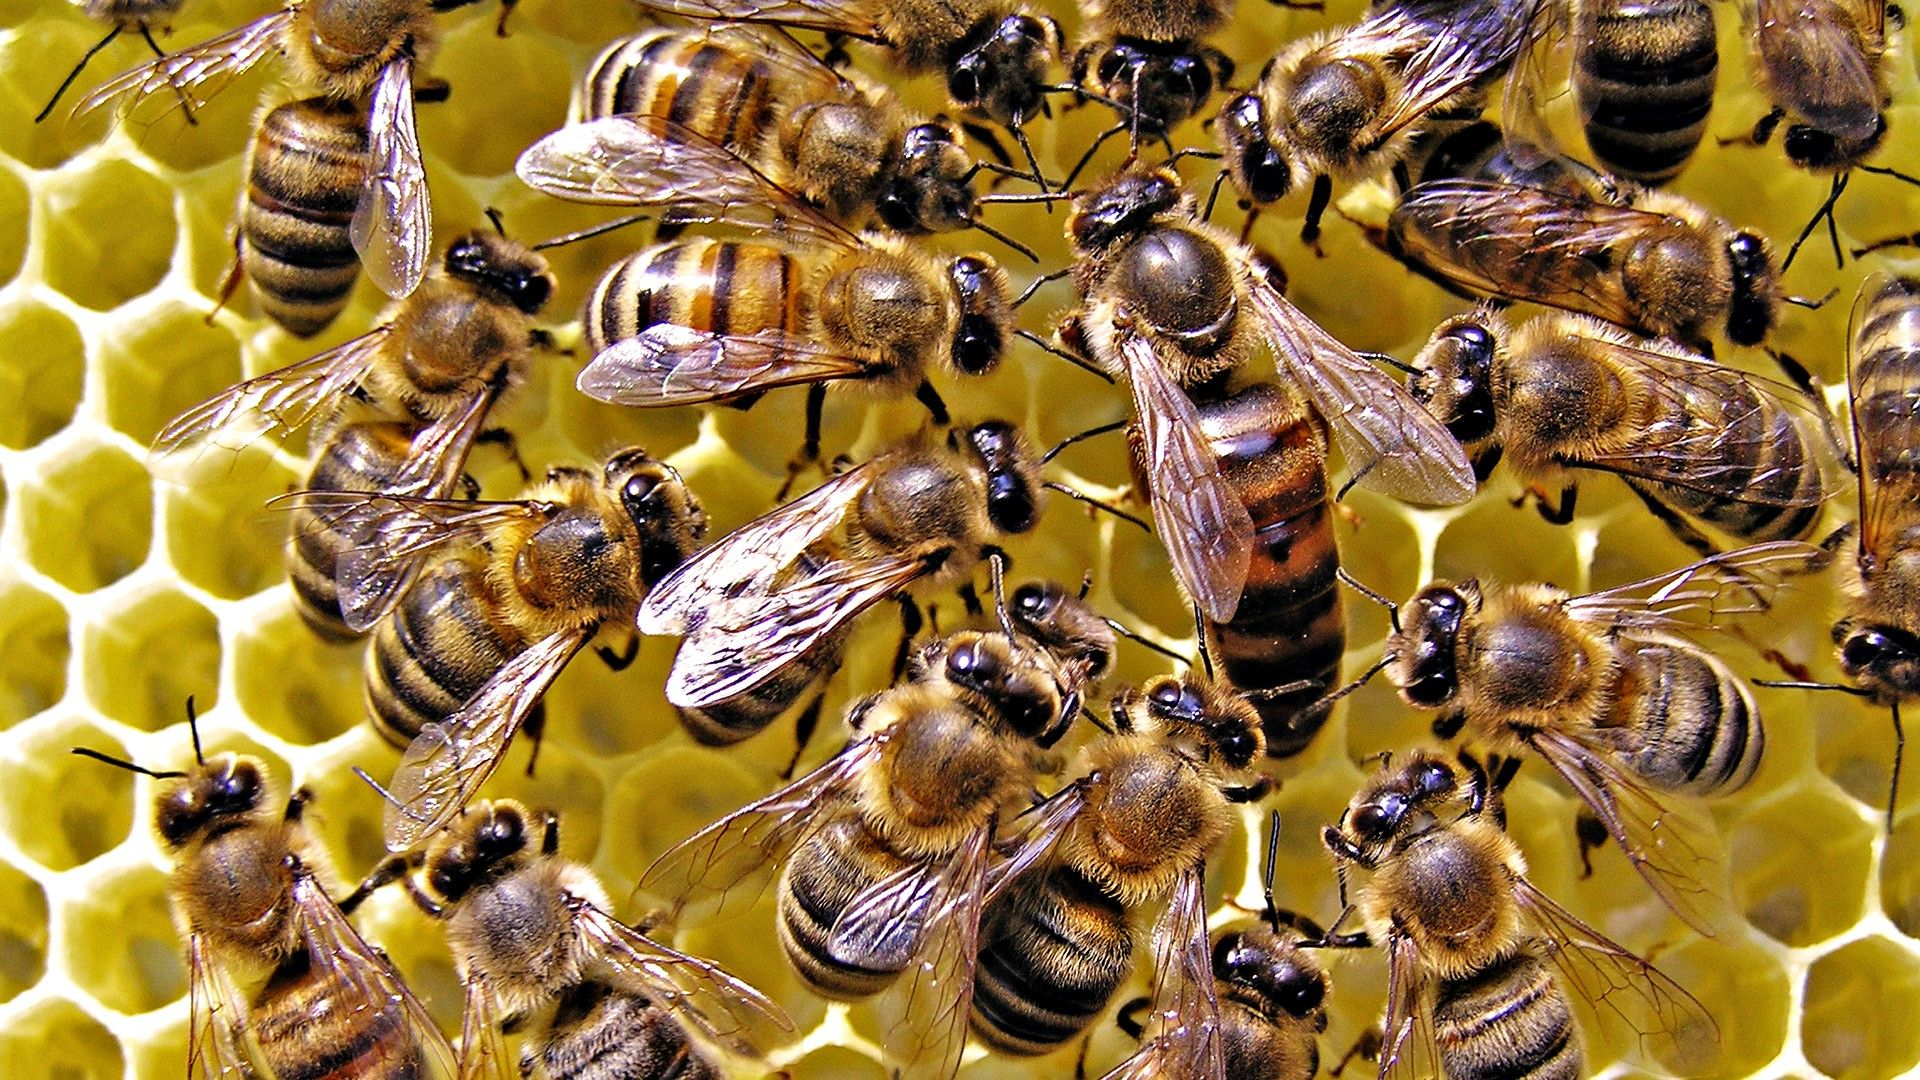 queen bee abeille reine comment apiculture miel recolte blog article